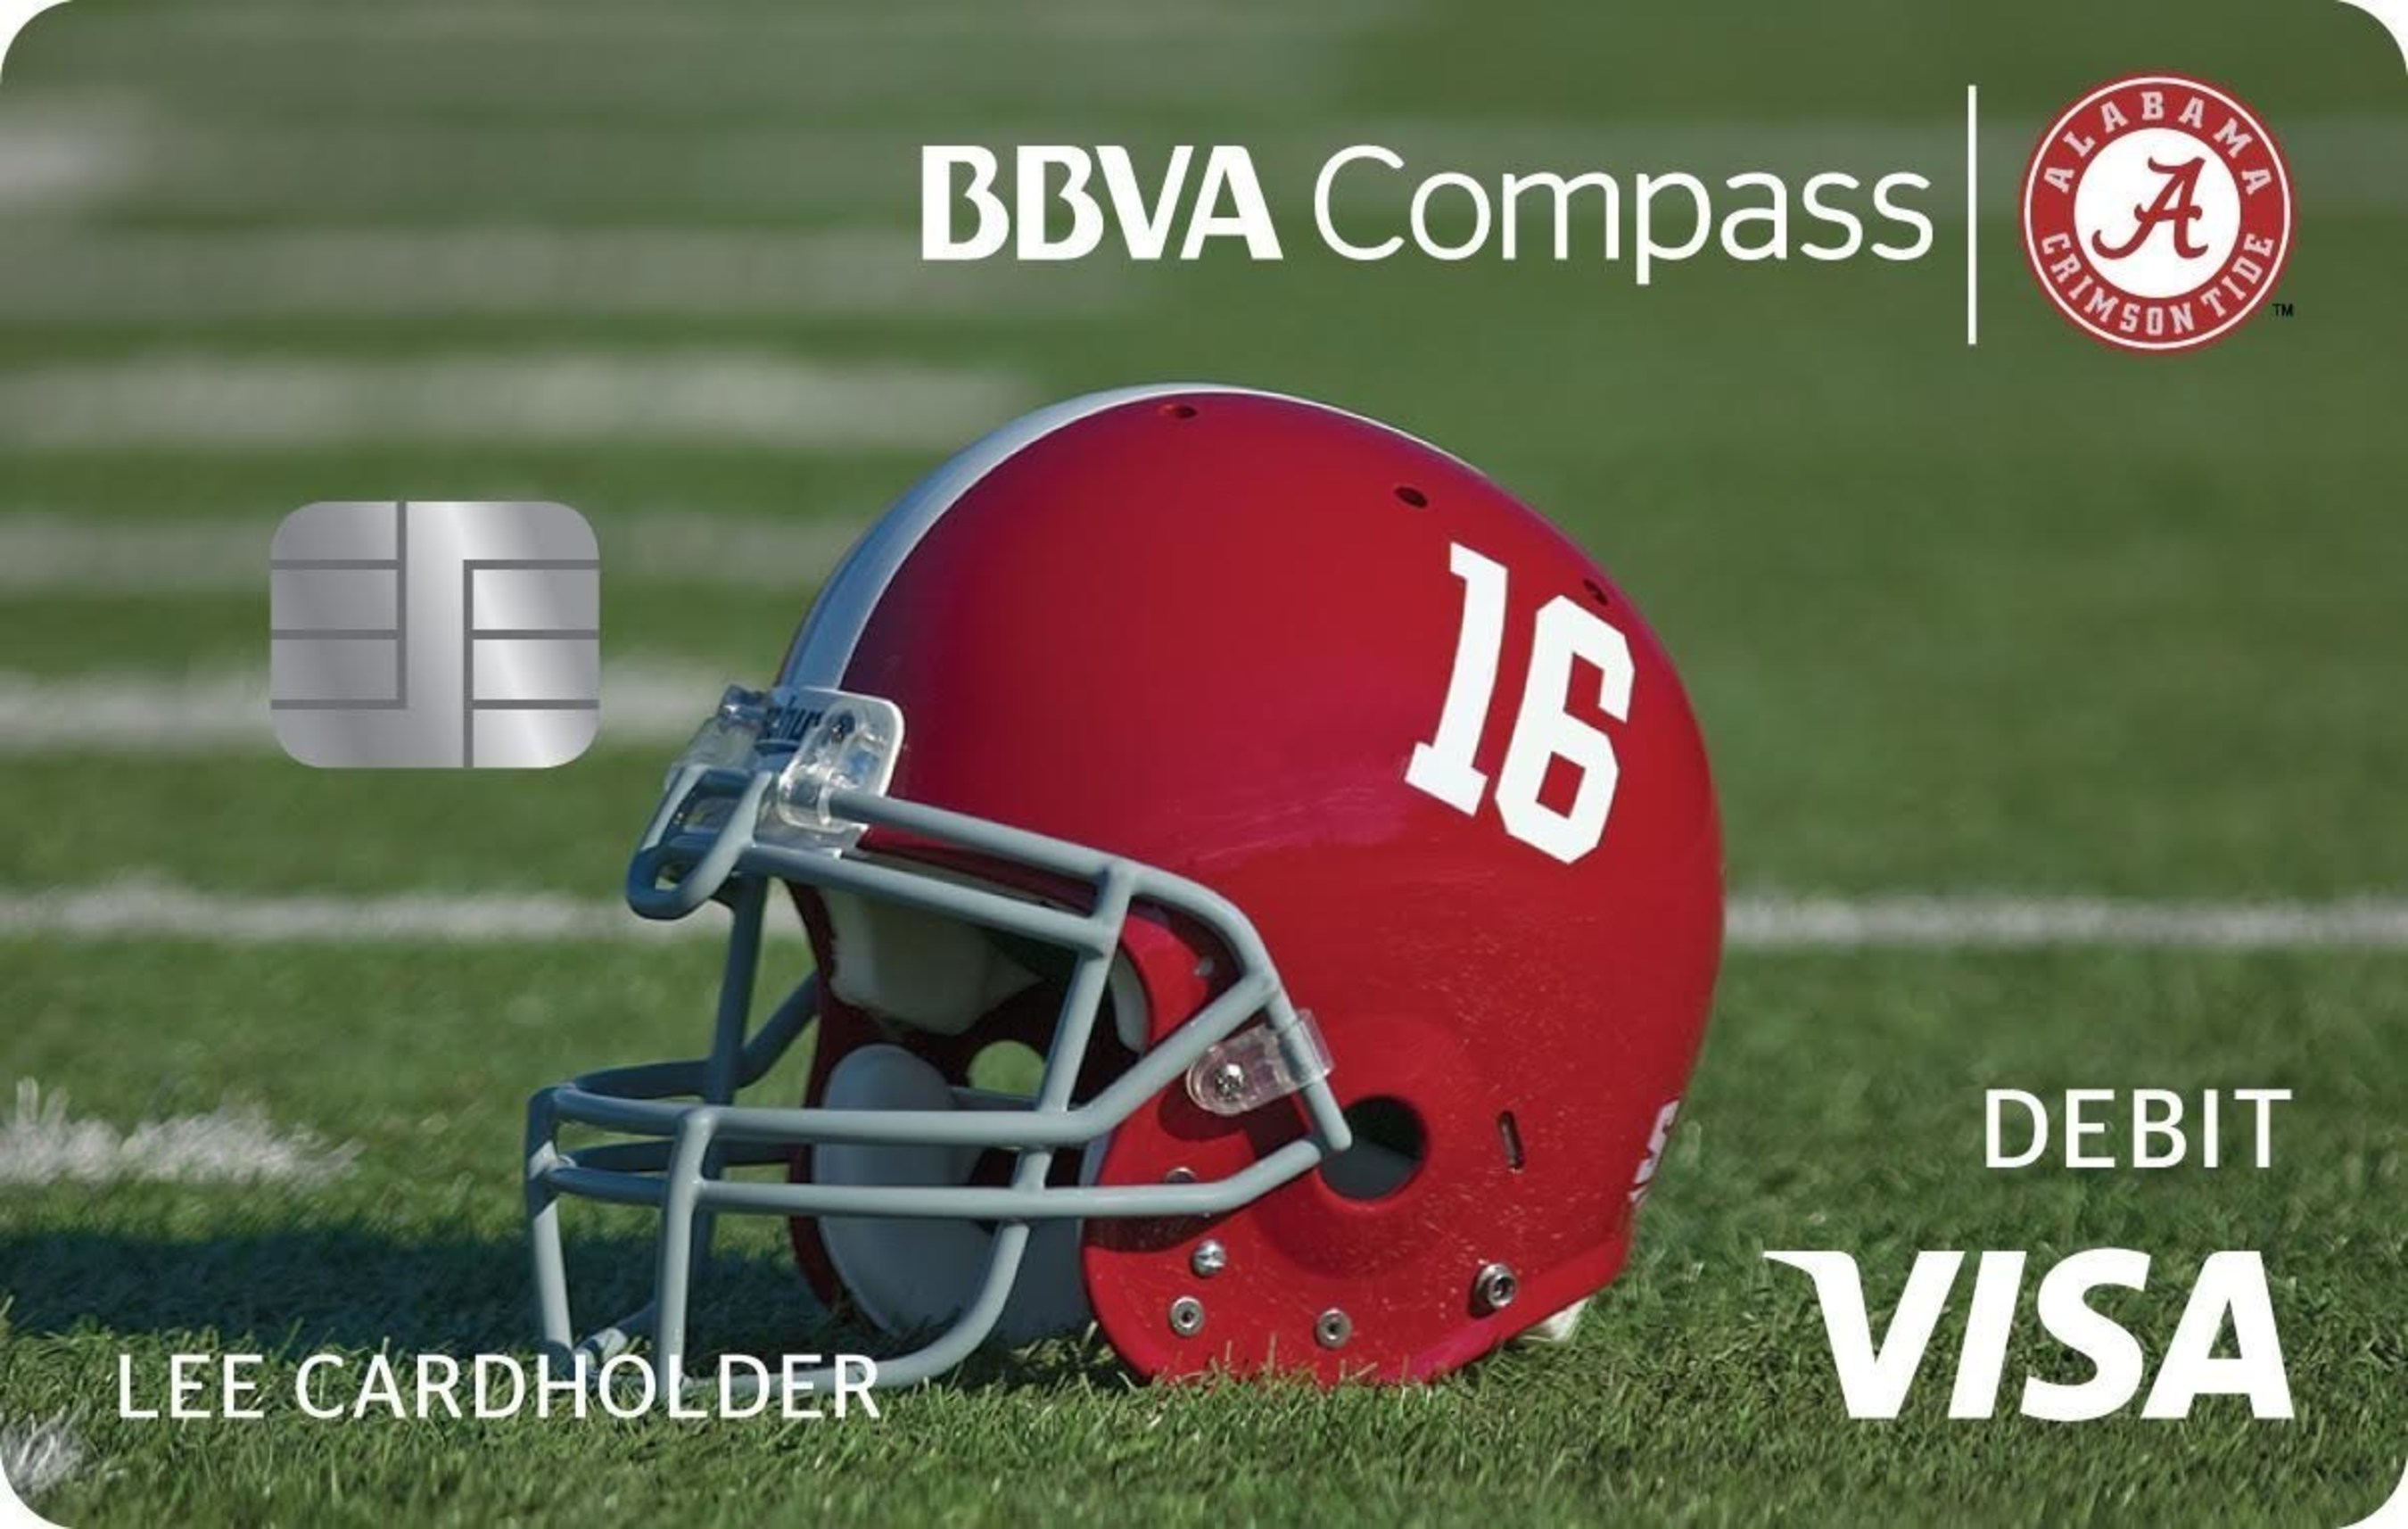 BBVA Compass will roll out its commemorative Bama-branded Visa(R) check card next month. Fans can flash their Crimson Tide pride every time they swipe their cards.